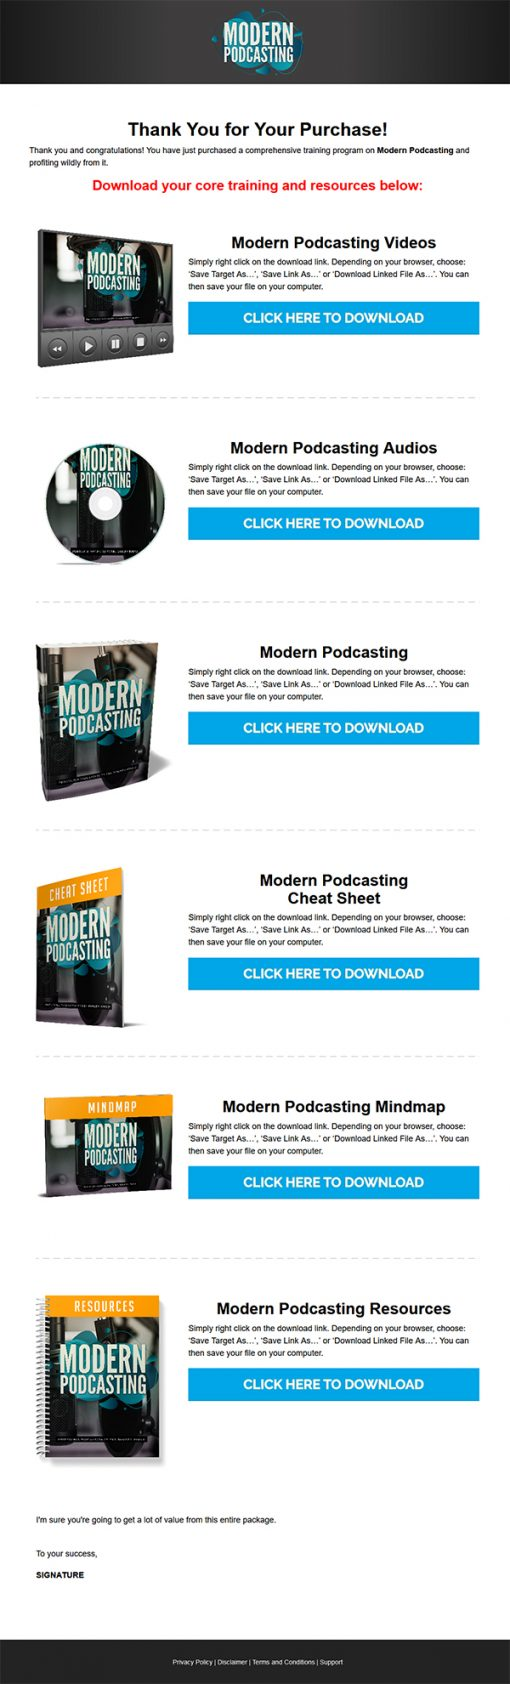 Modern Podcasting Ebook and Videos MRR